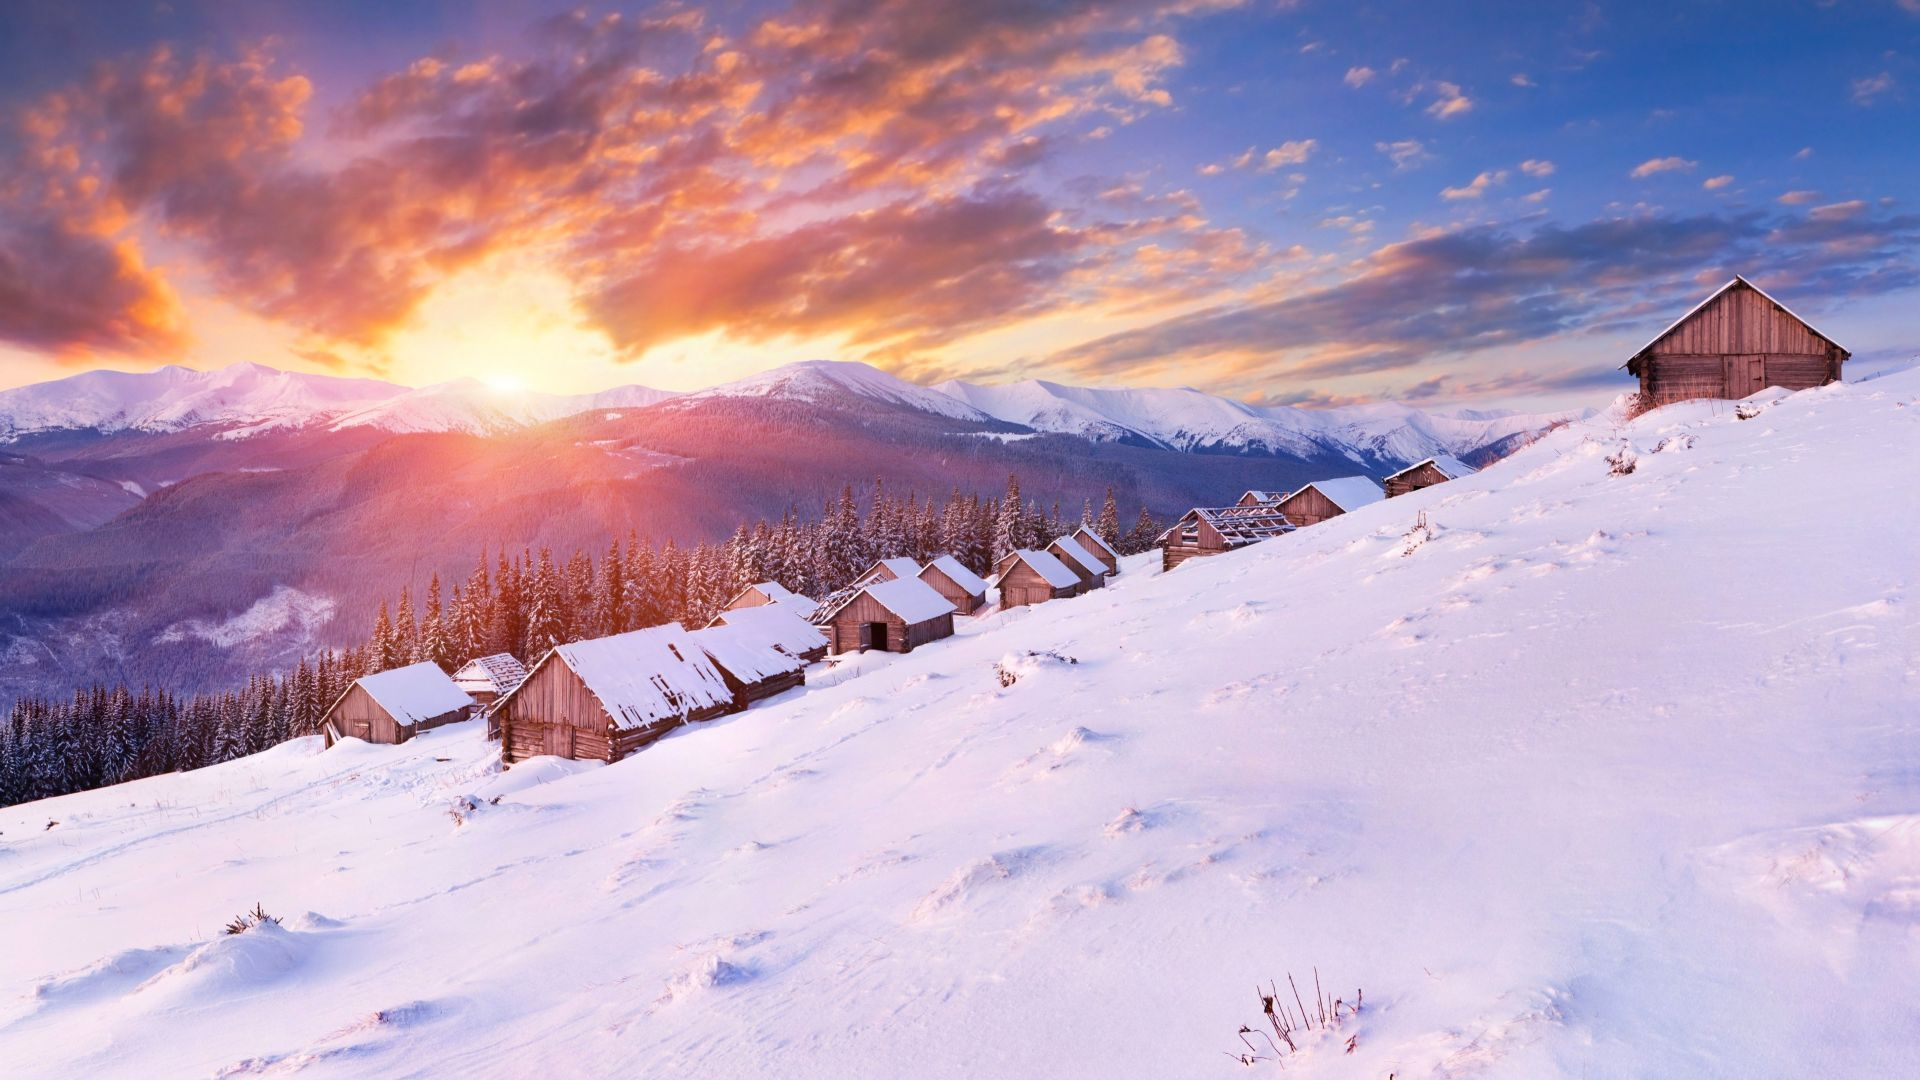 Mountains, 5k, 4k wallpaper, hills, sunset, snow, winter, house (horizontal)